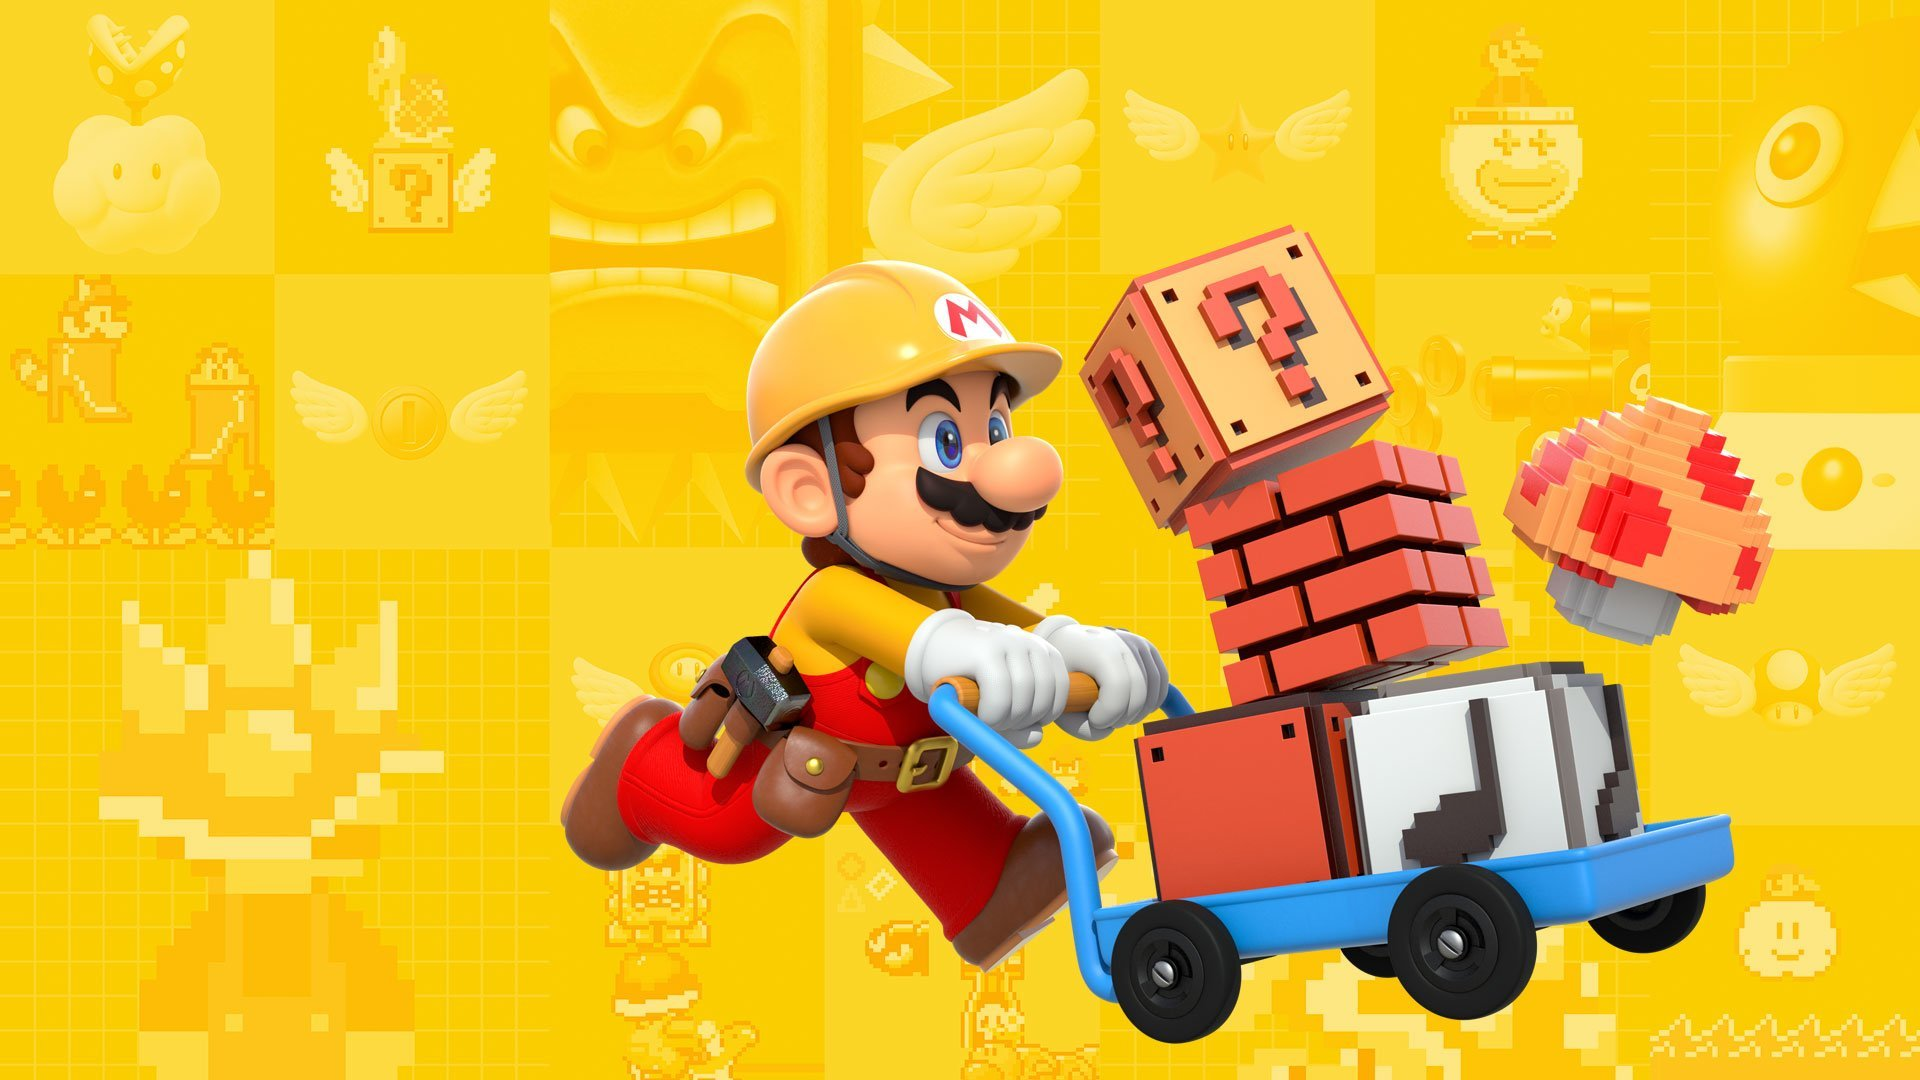 Story Mode will let Mario explore over 100 courses created by Nintendo!